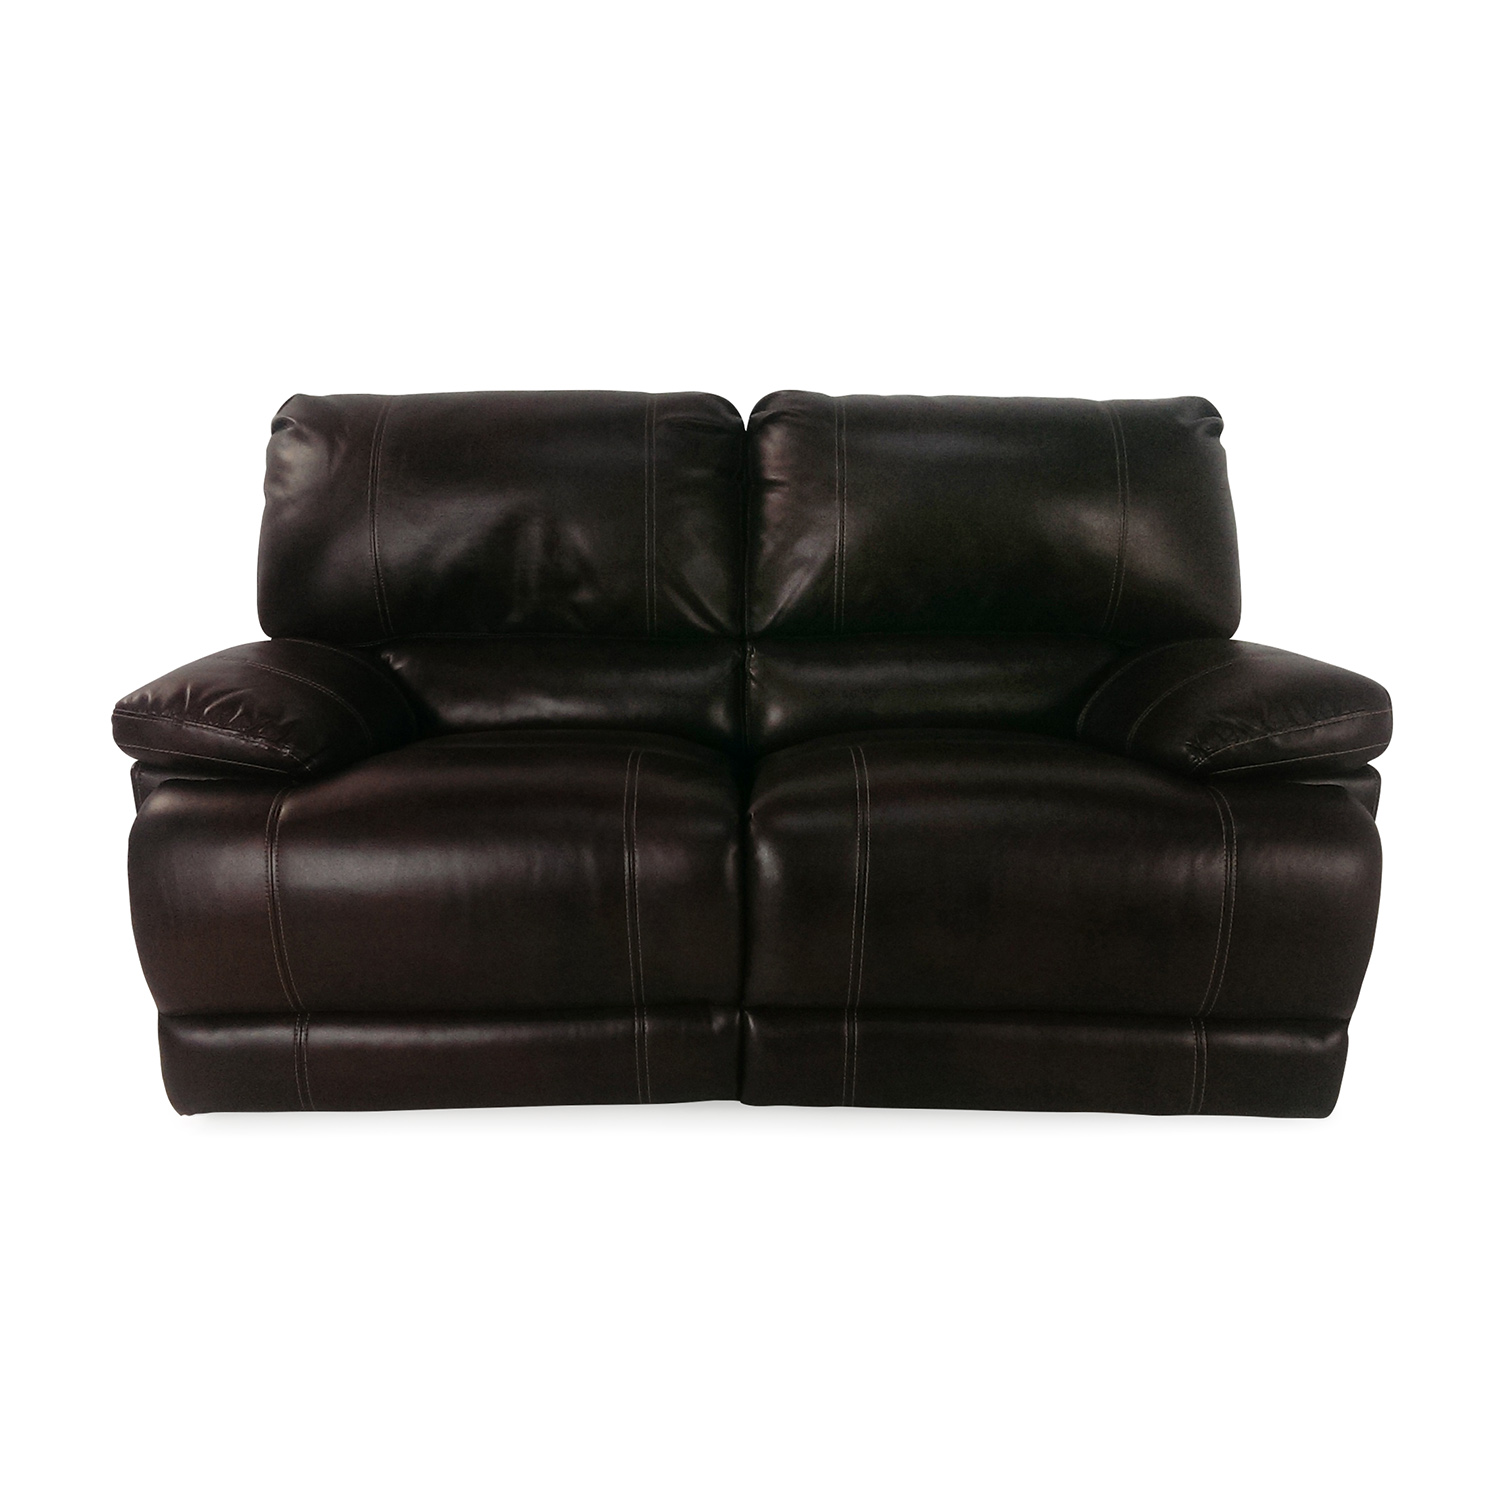 shop Bobs Furniture Reclining Loveseat Bobs Furniture Loveseats